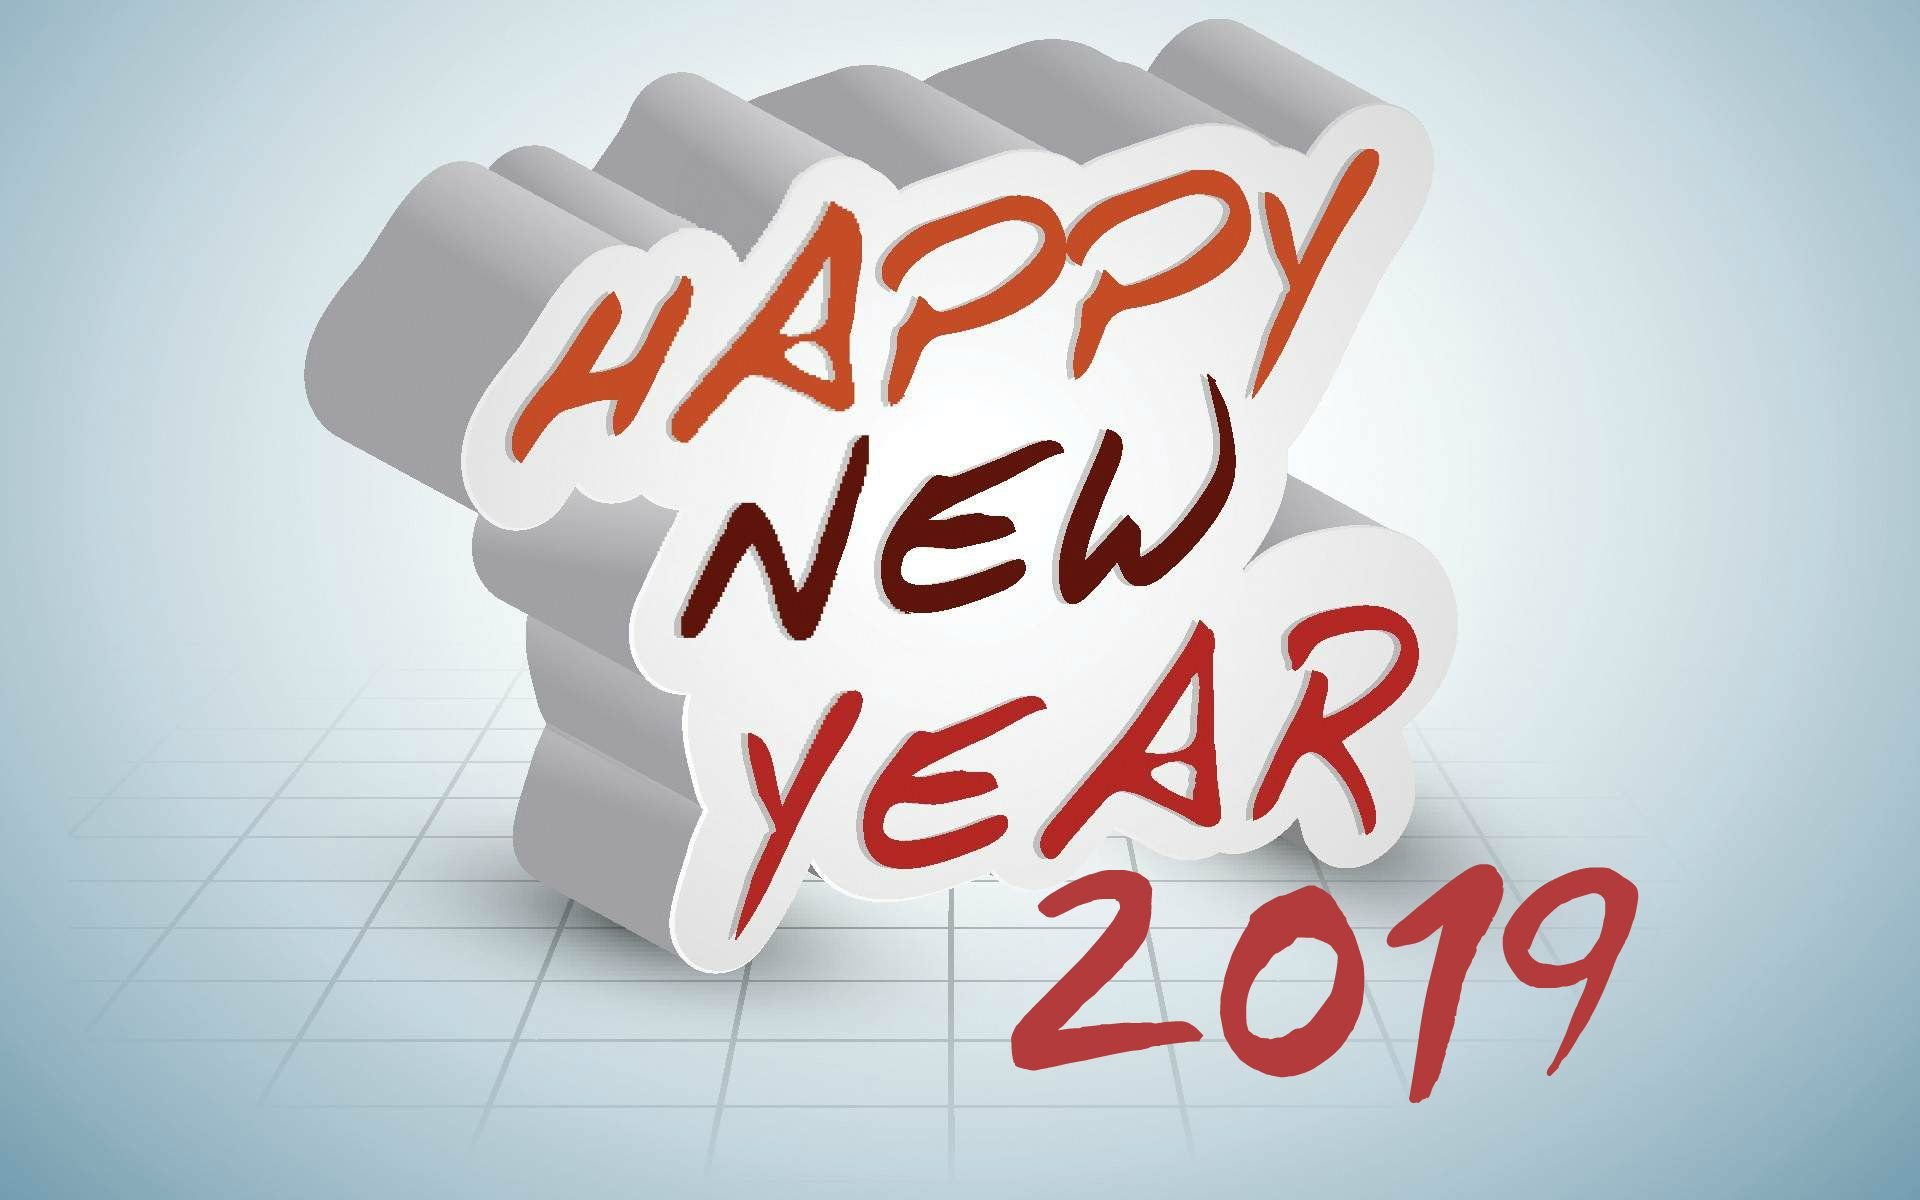 goodbye 2018 welcome 2019 new year images messages sms happynewyear2019 newyear happynewyear